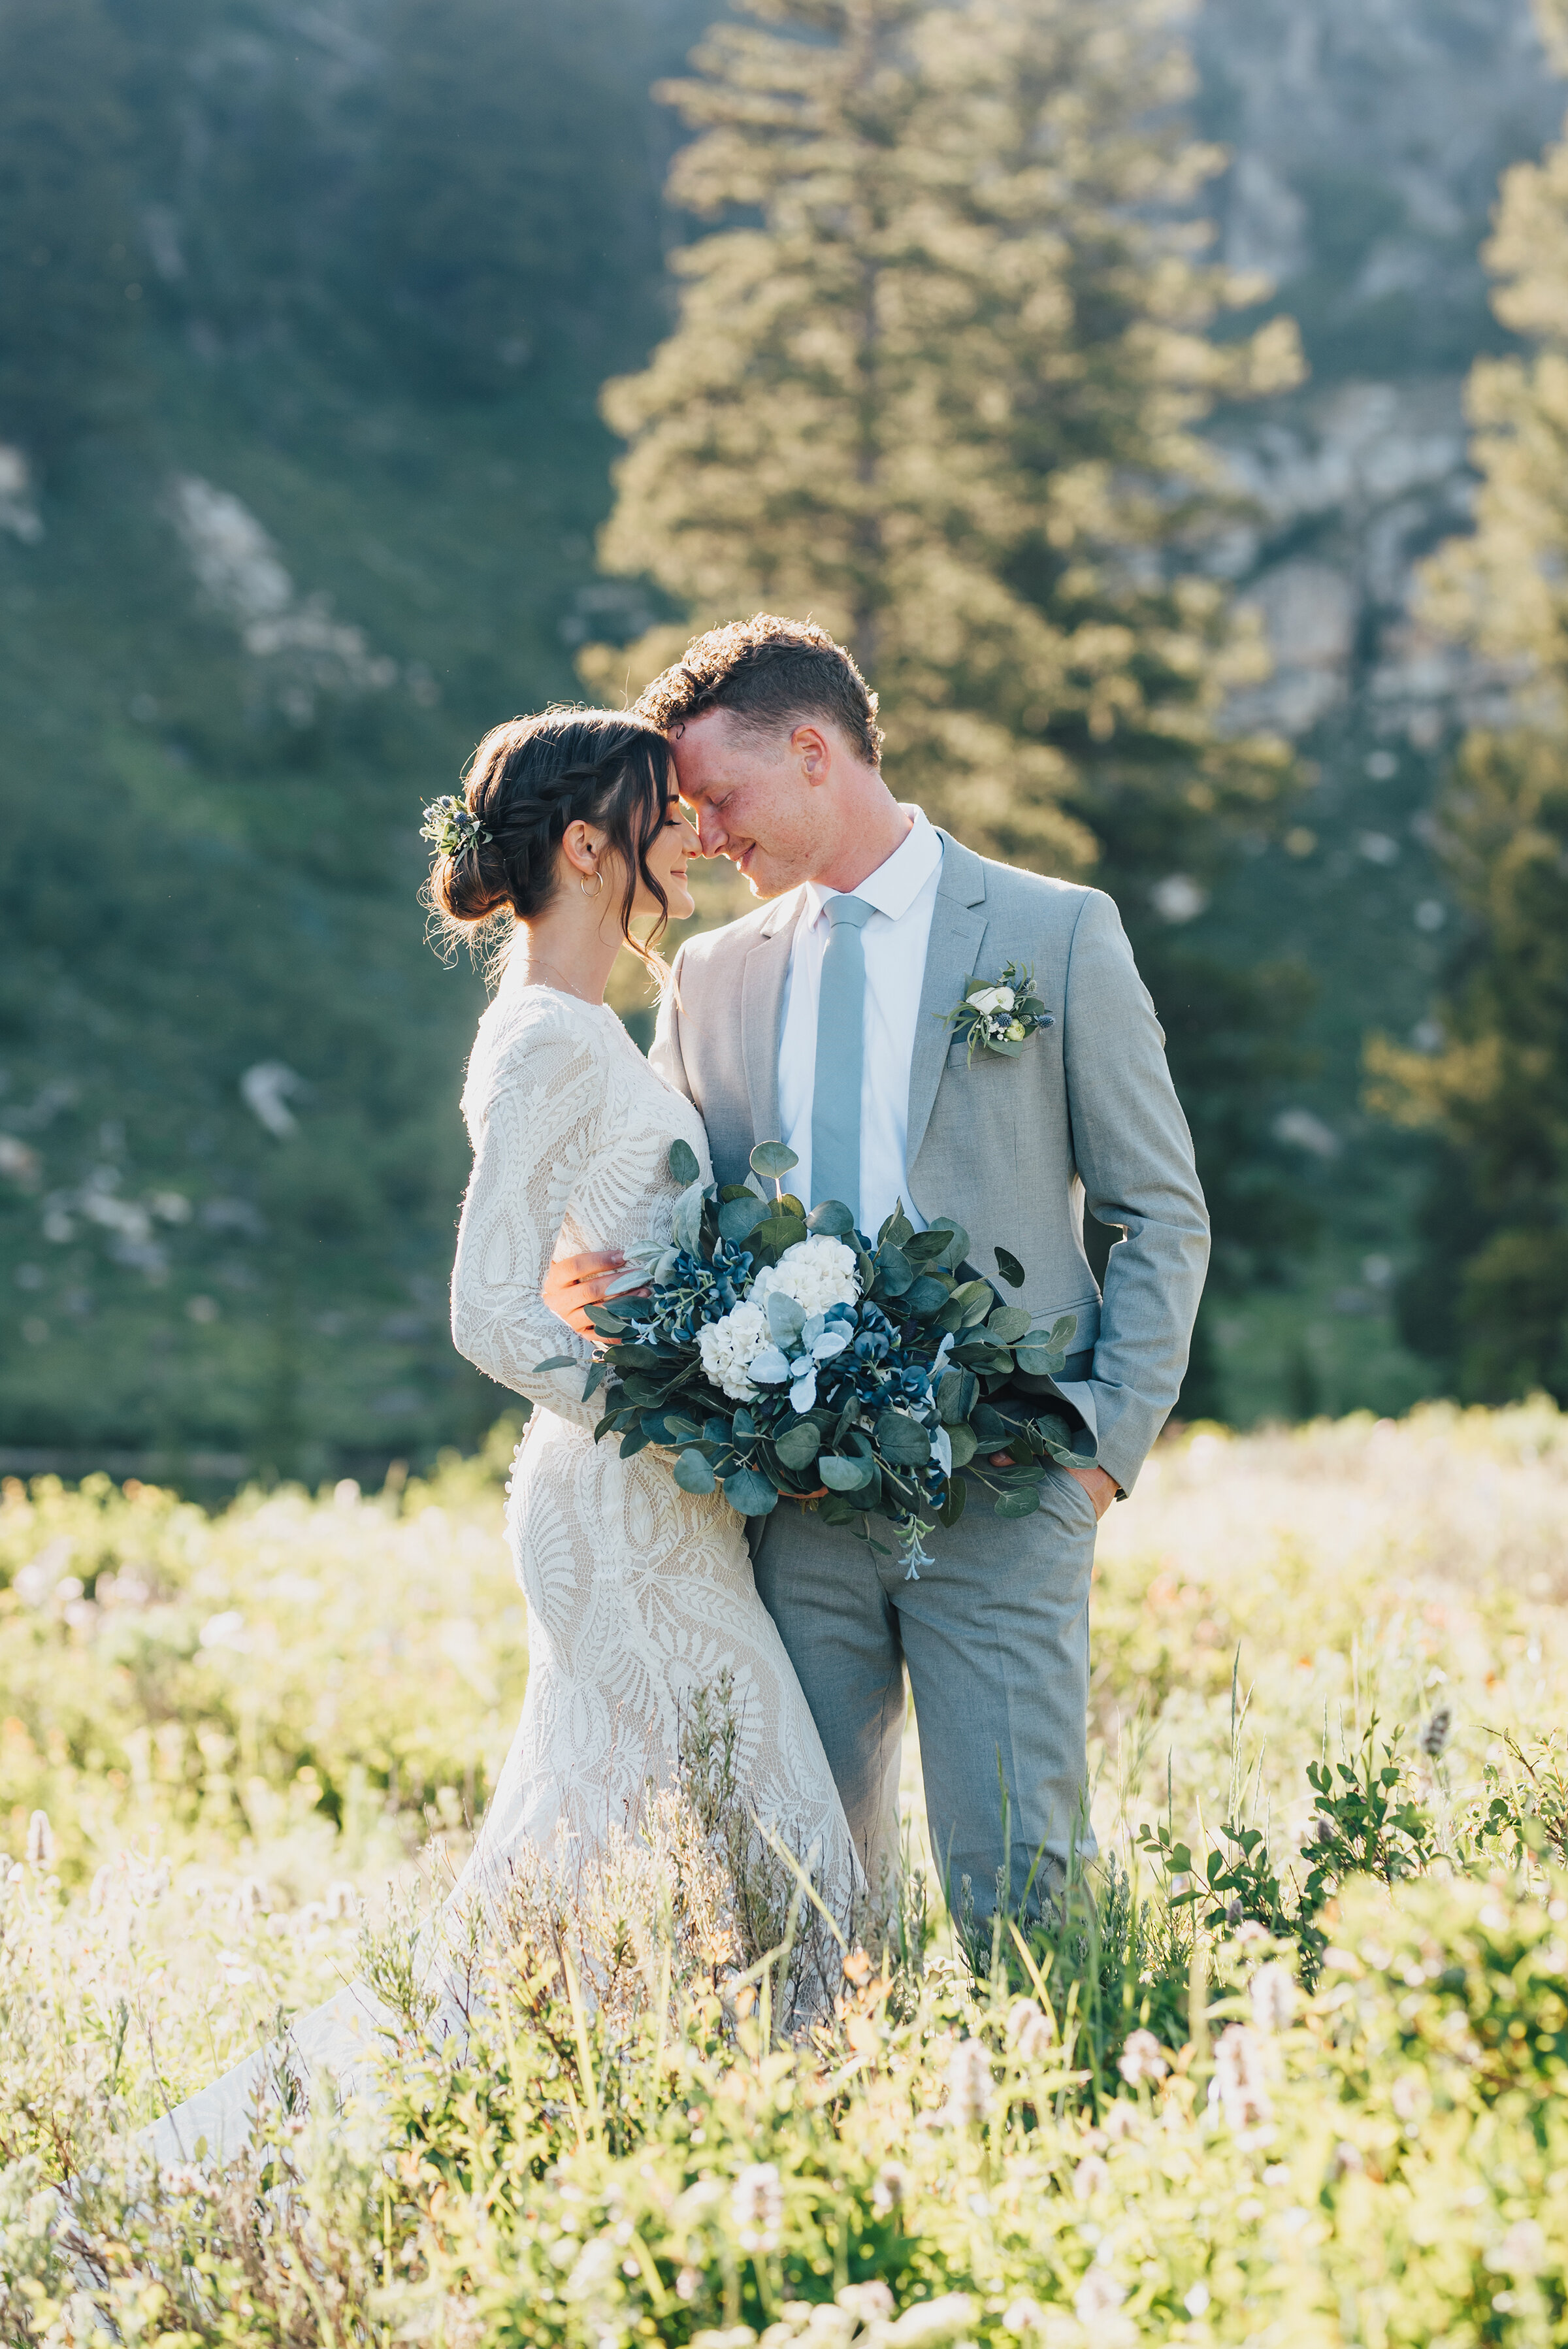 Tender embrace amongst wild flowers and pine trees up Logan canyon at Tony Grove. Kristi Alyse photography Logan Utah wedding photographer forest nature dreamy formals Logan canyon Tony Grove scenic bridals Northern Utah photographer Utah brides bride and groom Cache Valley #kristialysephotography #loganutahphotographer #tonygrove #logancanyon #utahweddingphotographer #bridals #formals #wildflowers #northernutah #utahbrides